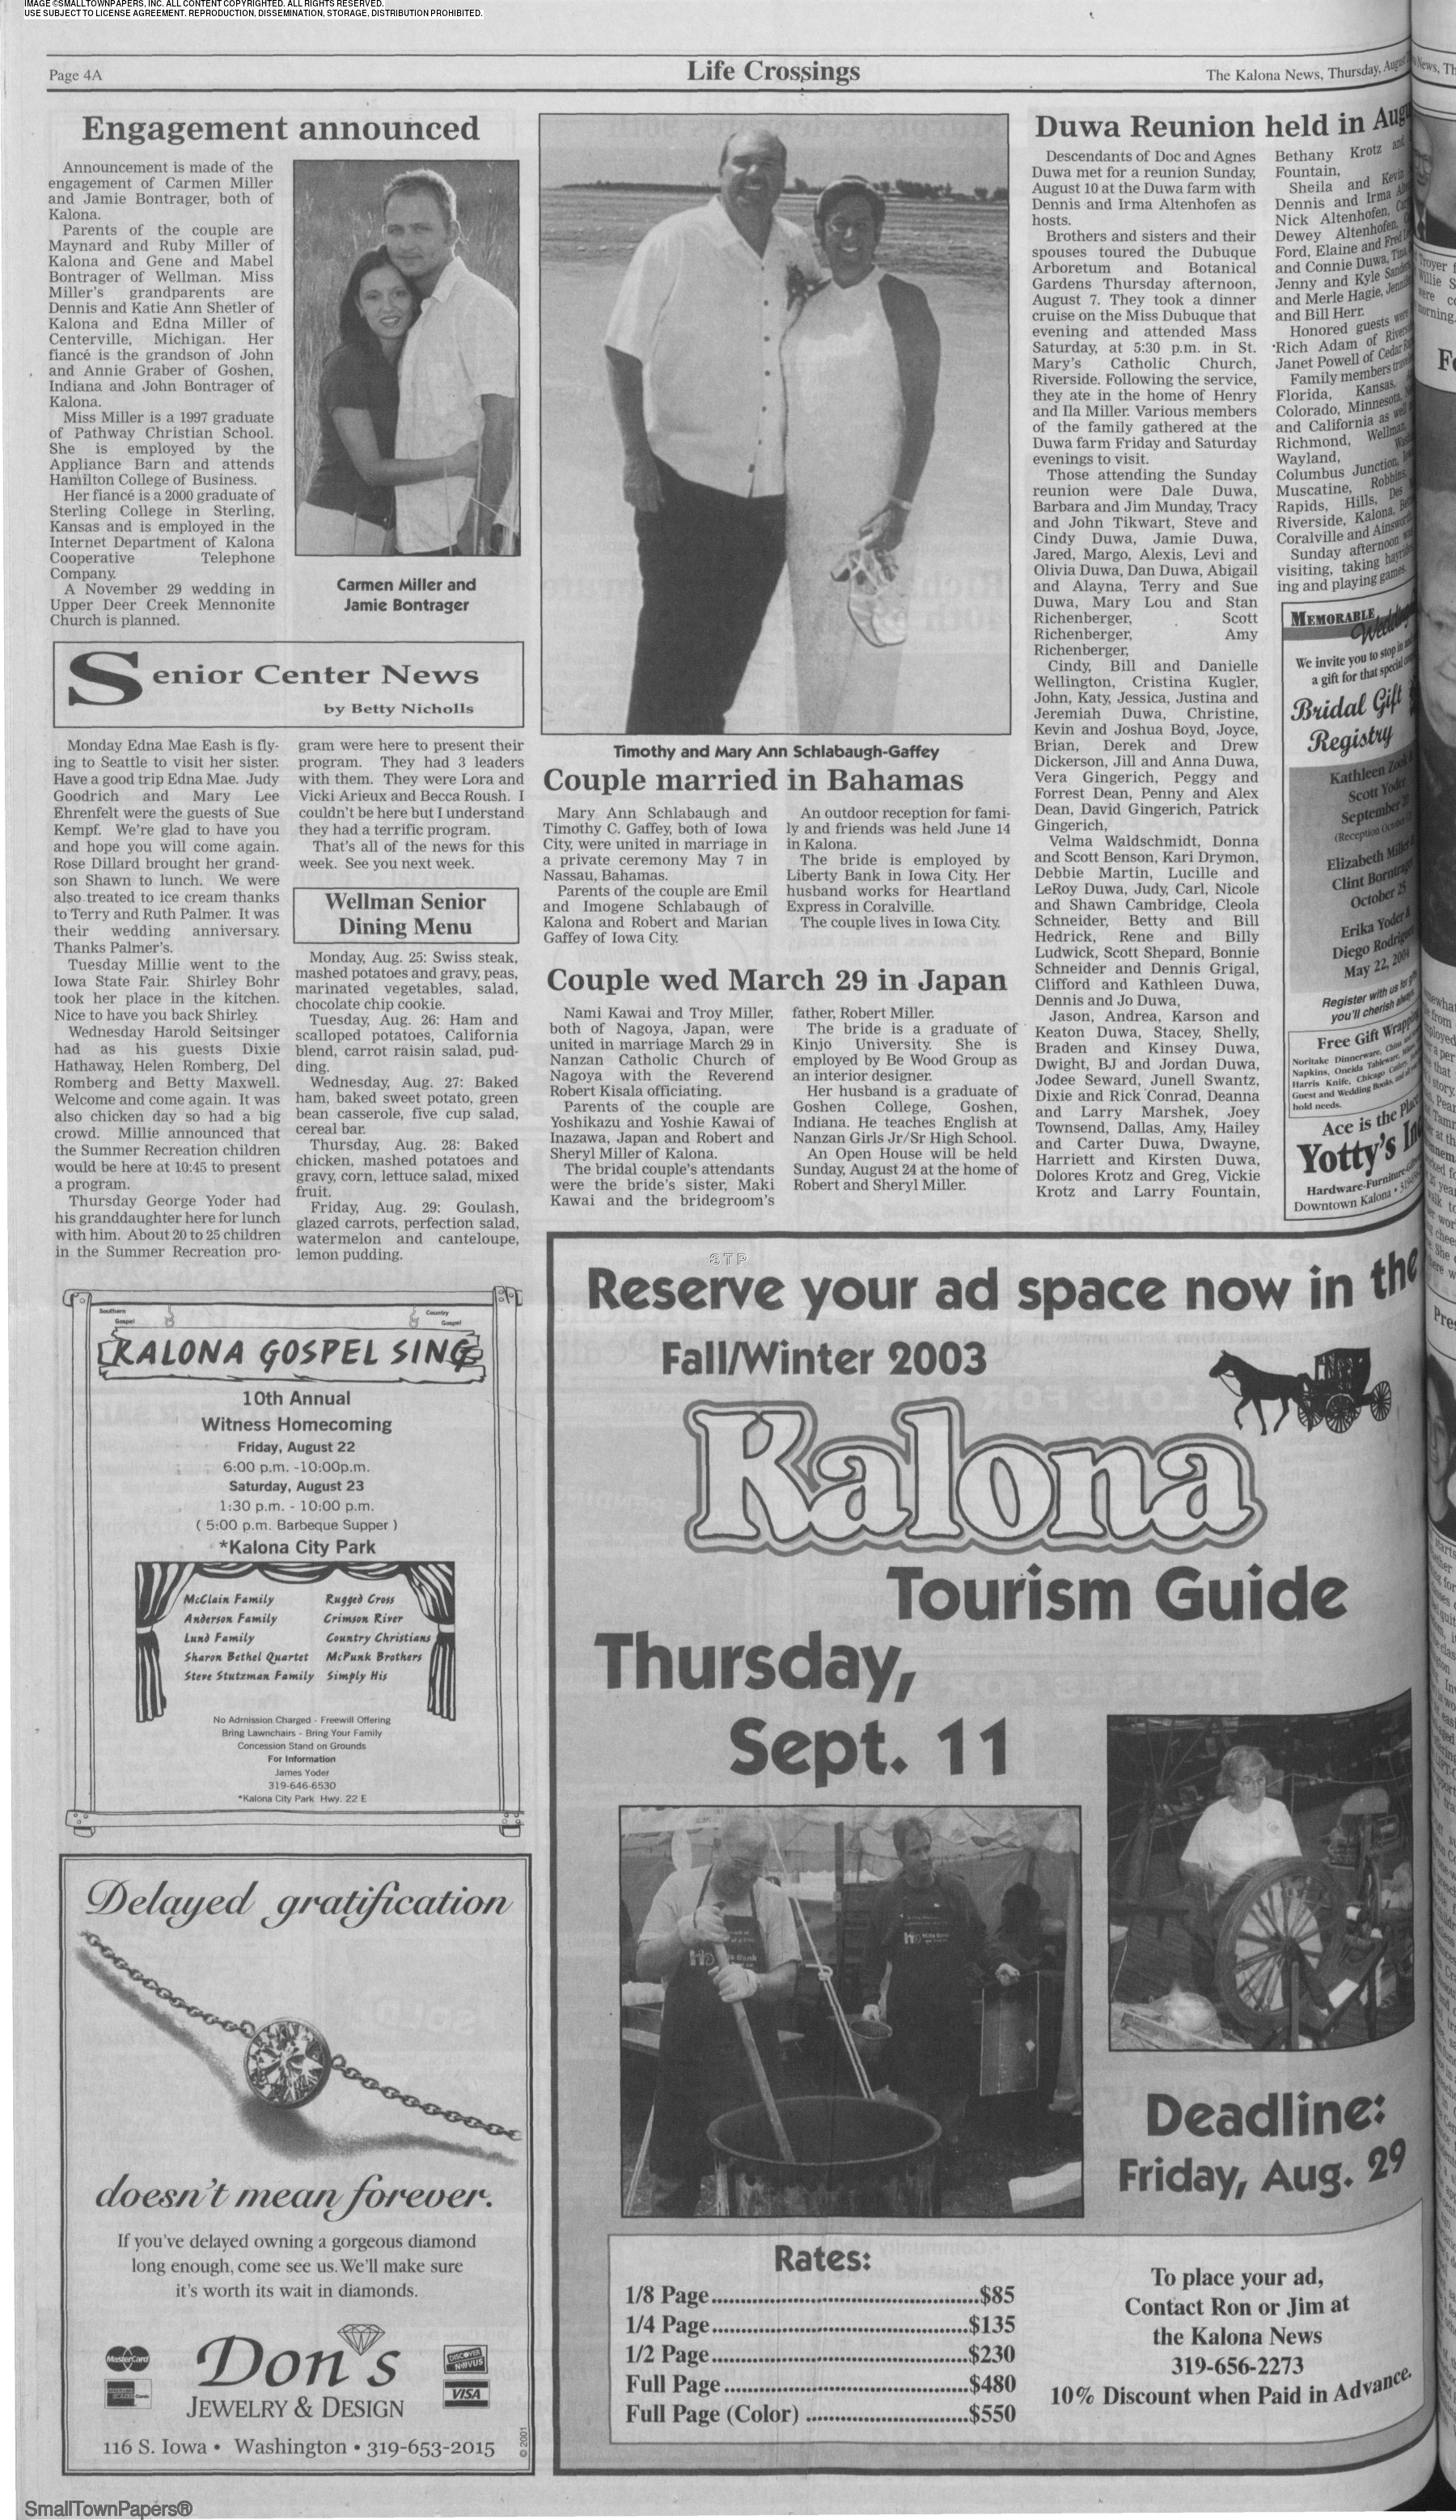 The Kalona News August 21, 2003: Page 4